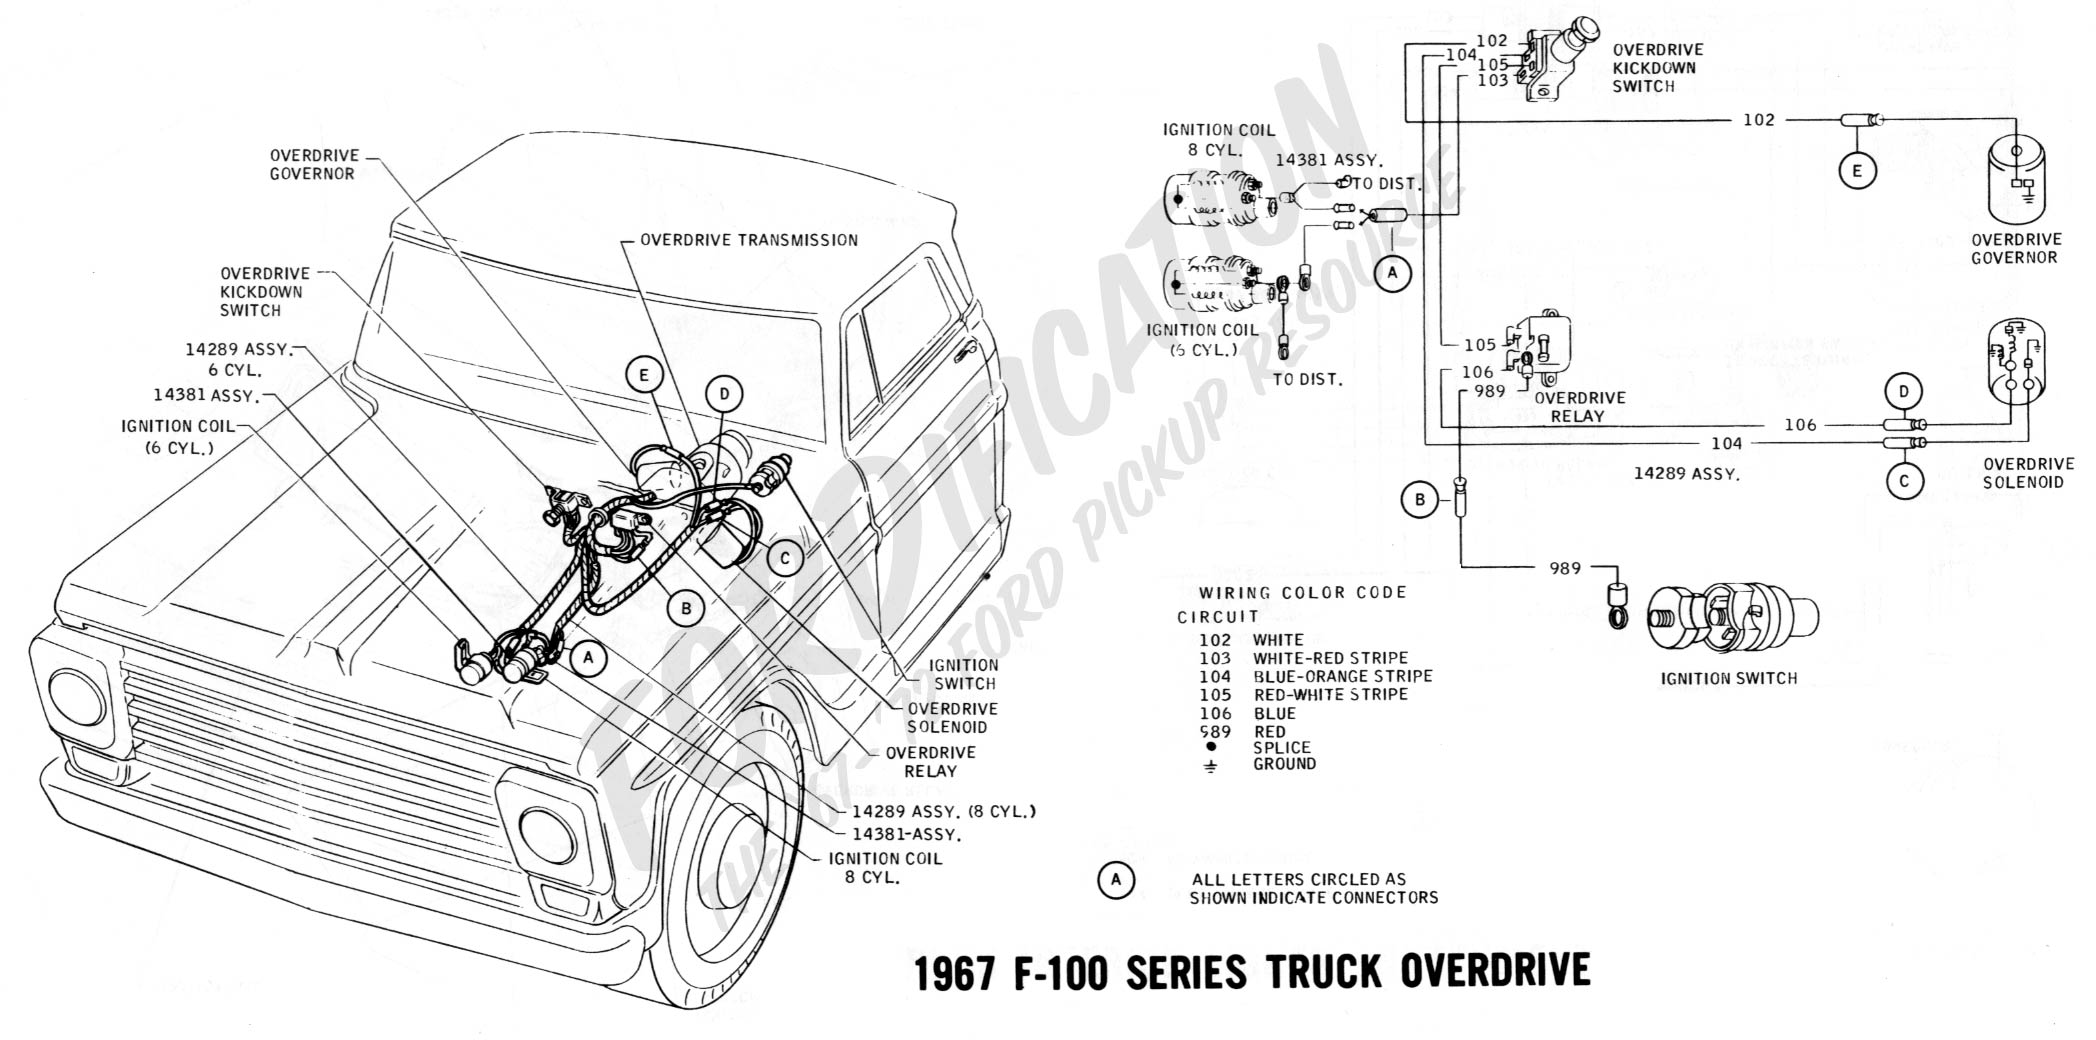 wiring 1967overdrive2 ford truck technical drawings and schematics section h wiring  at readyjetset.co